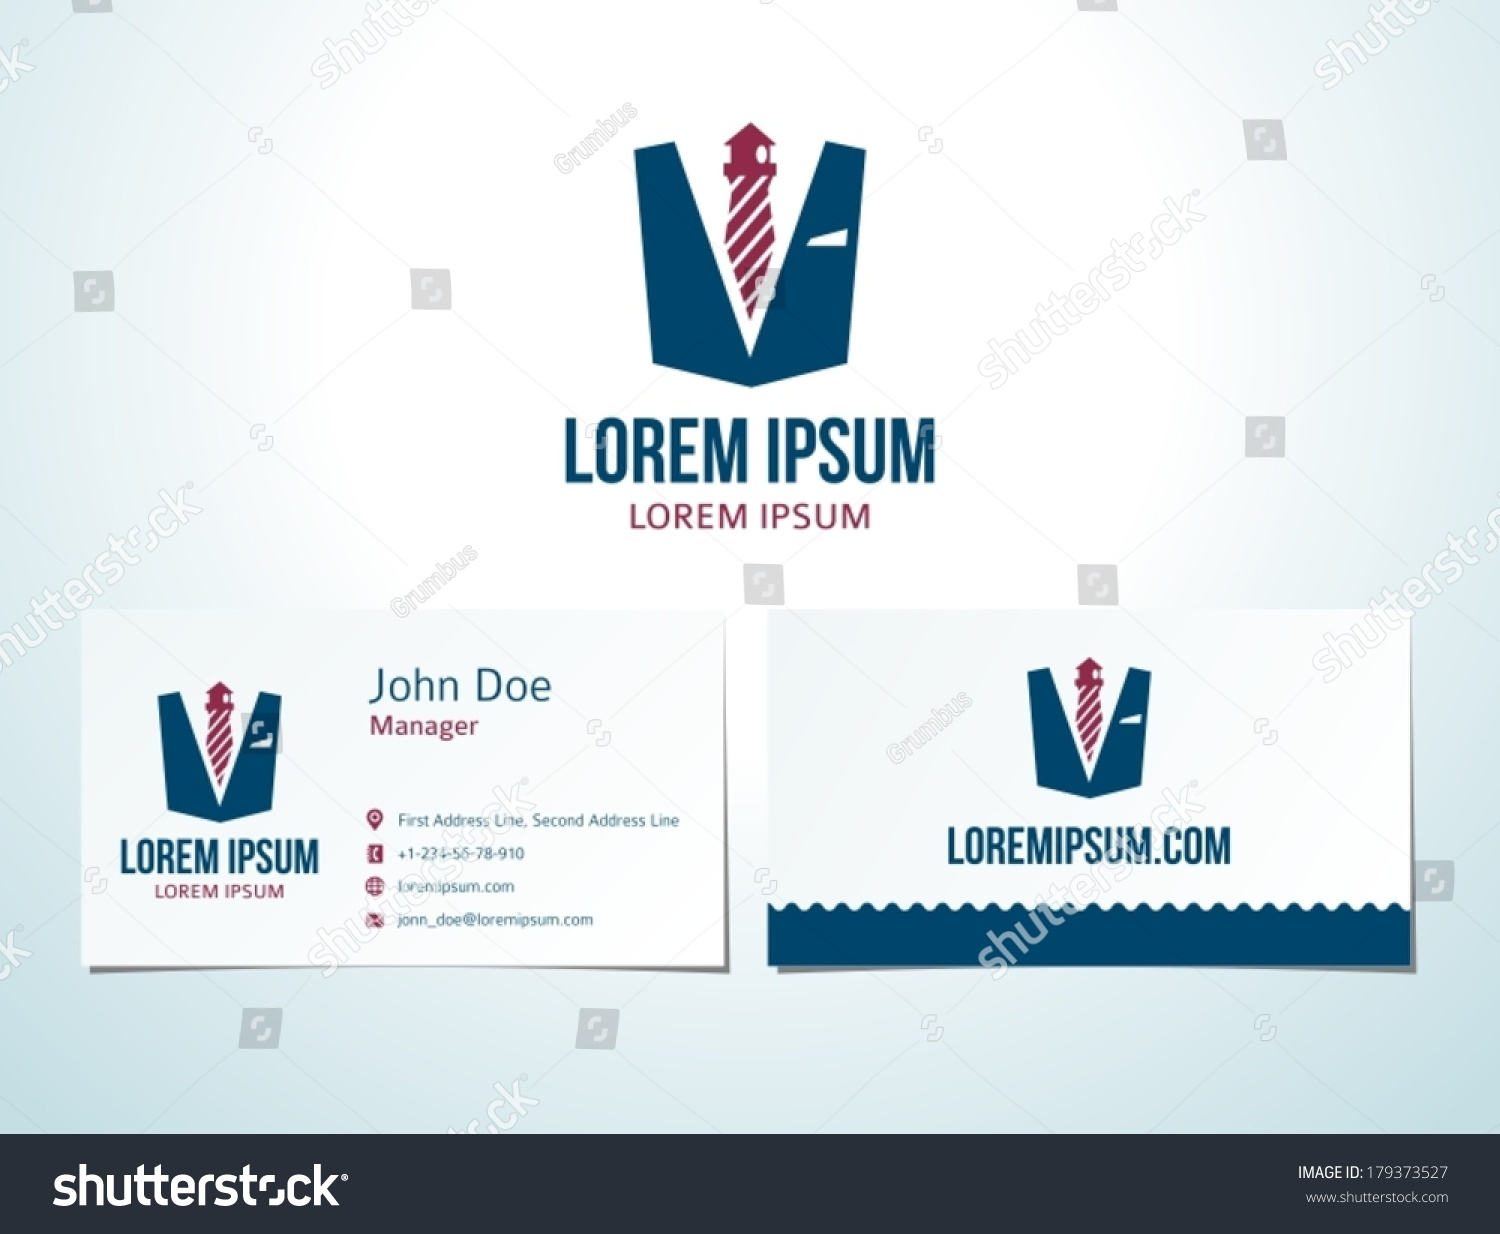 Tie Lighthouse Icon Vector Design Elements Stock Vector 179373527 ...